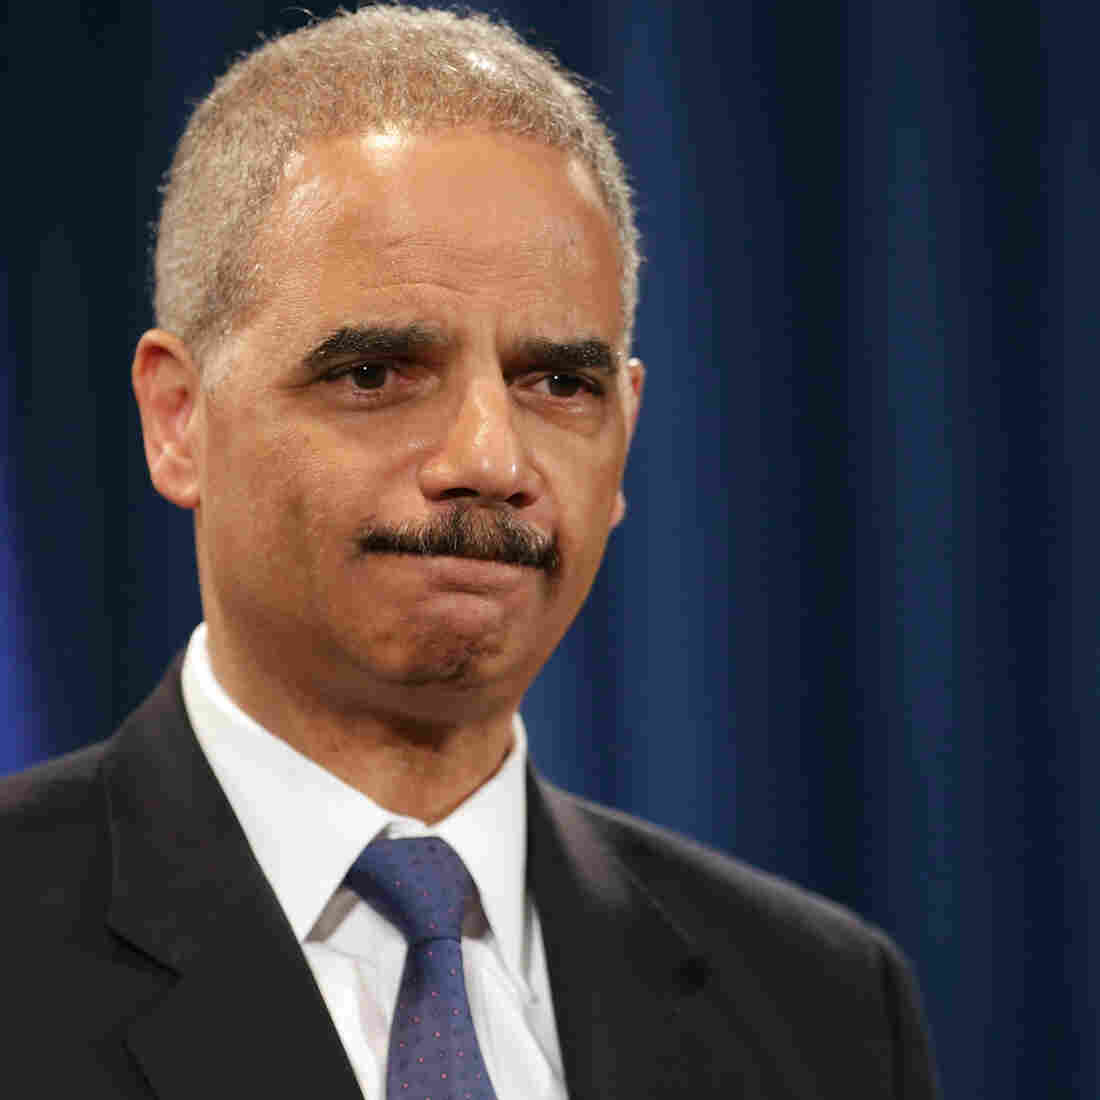 Attorney General Eric Holder during a news conference Tuesday in Washington, D.C.